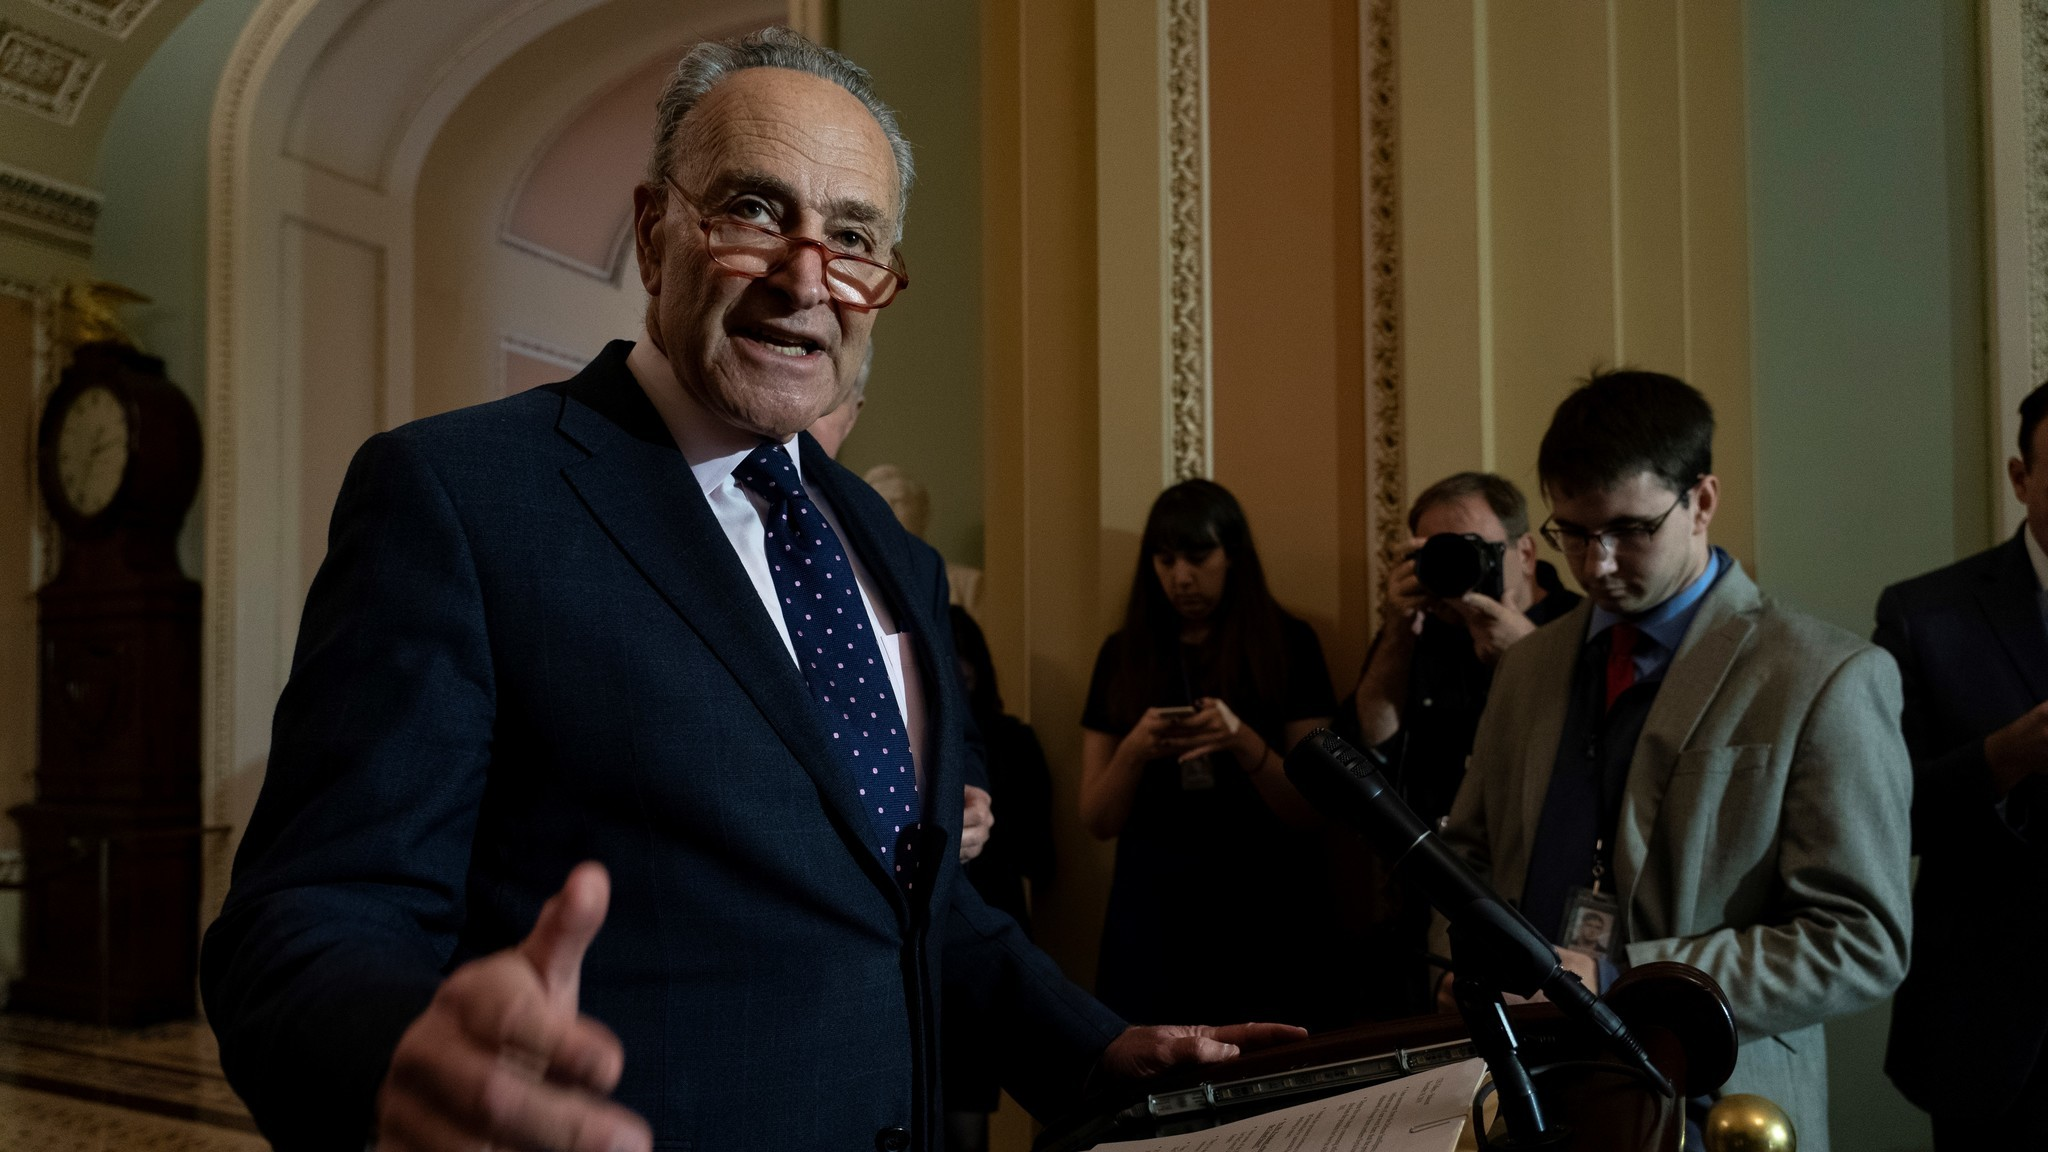 Chuck Schumer pleads with MLB, Rob Manfred to protect minor league baseball